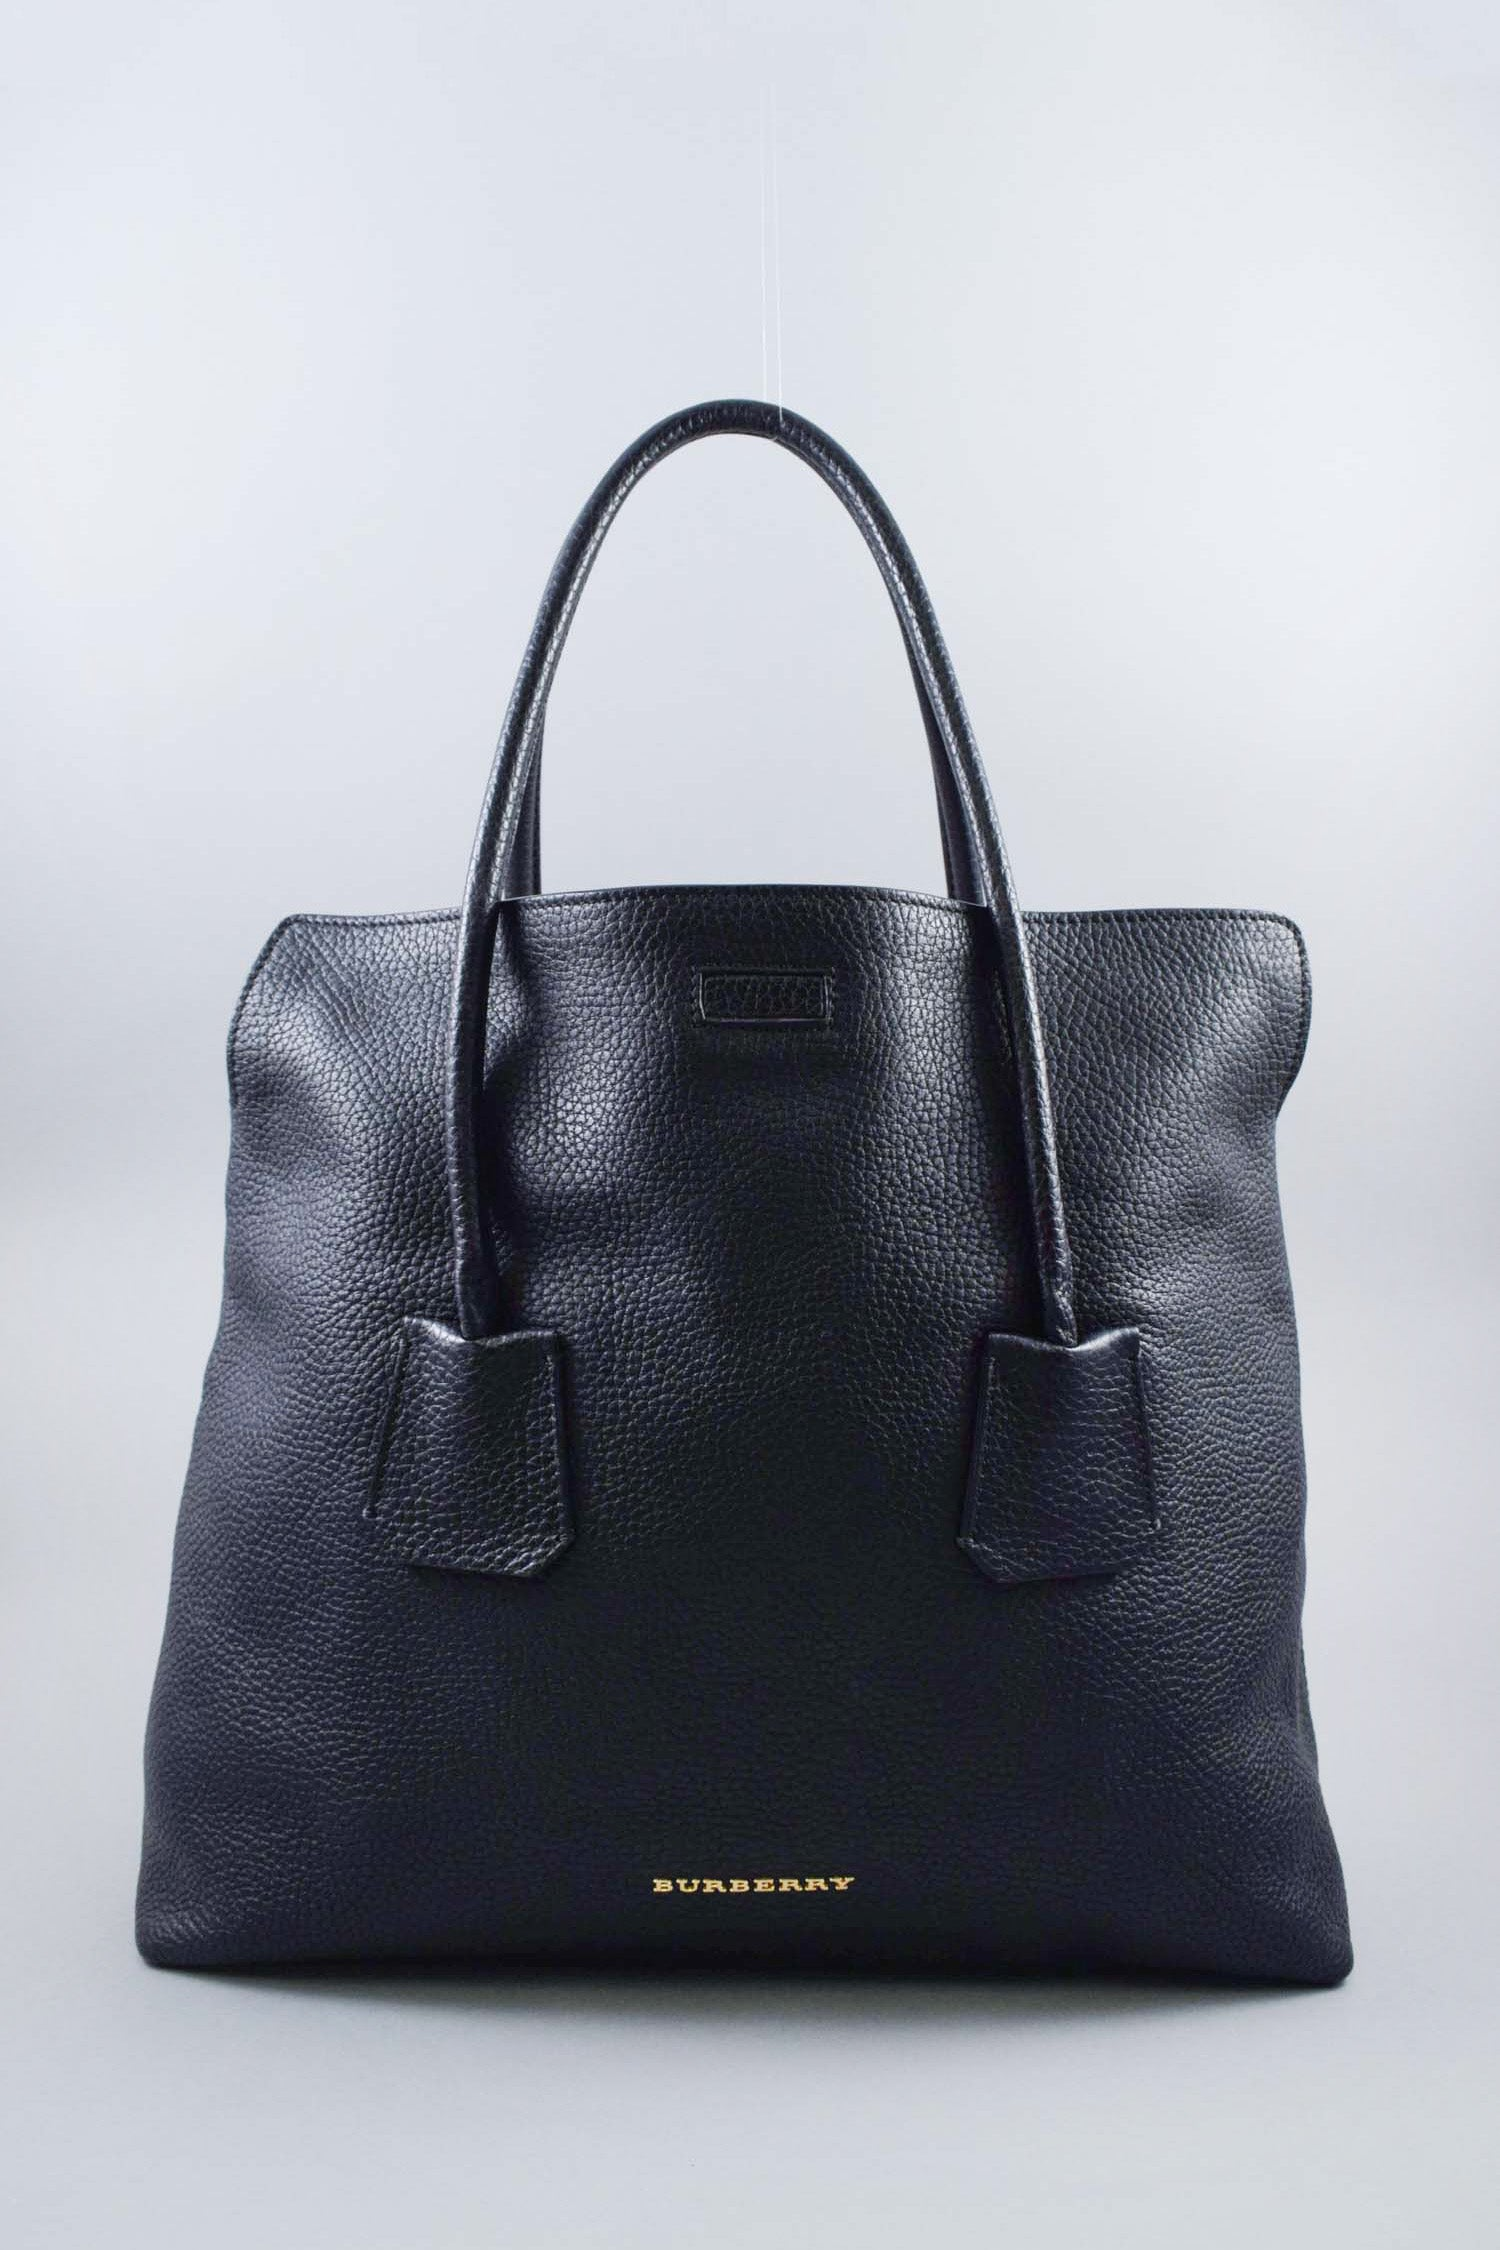 Burberry Black Pebbled Leather Baynard Tote